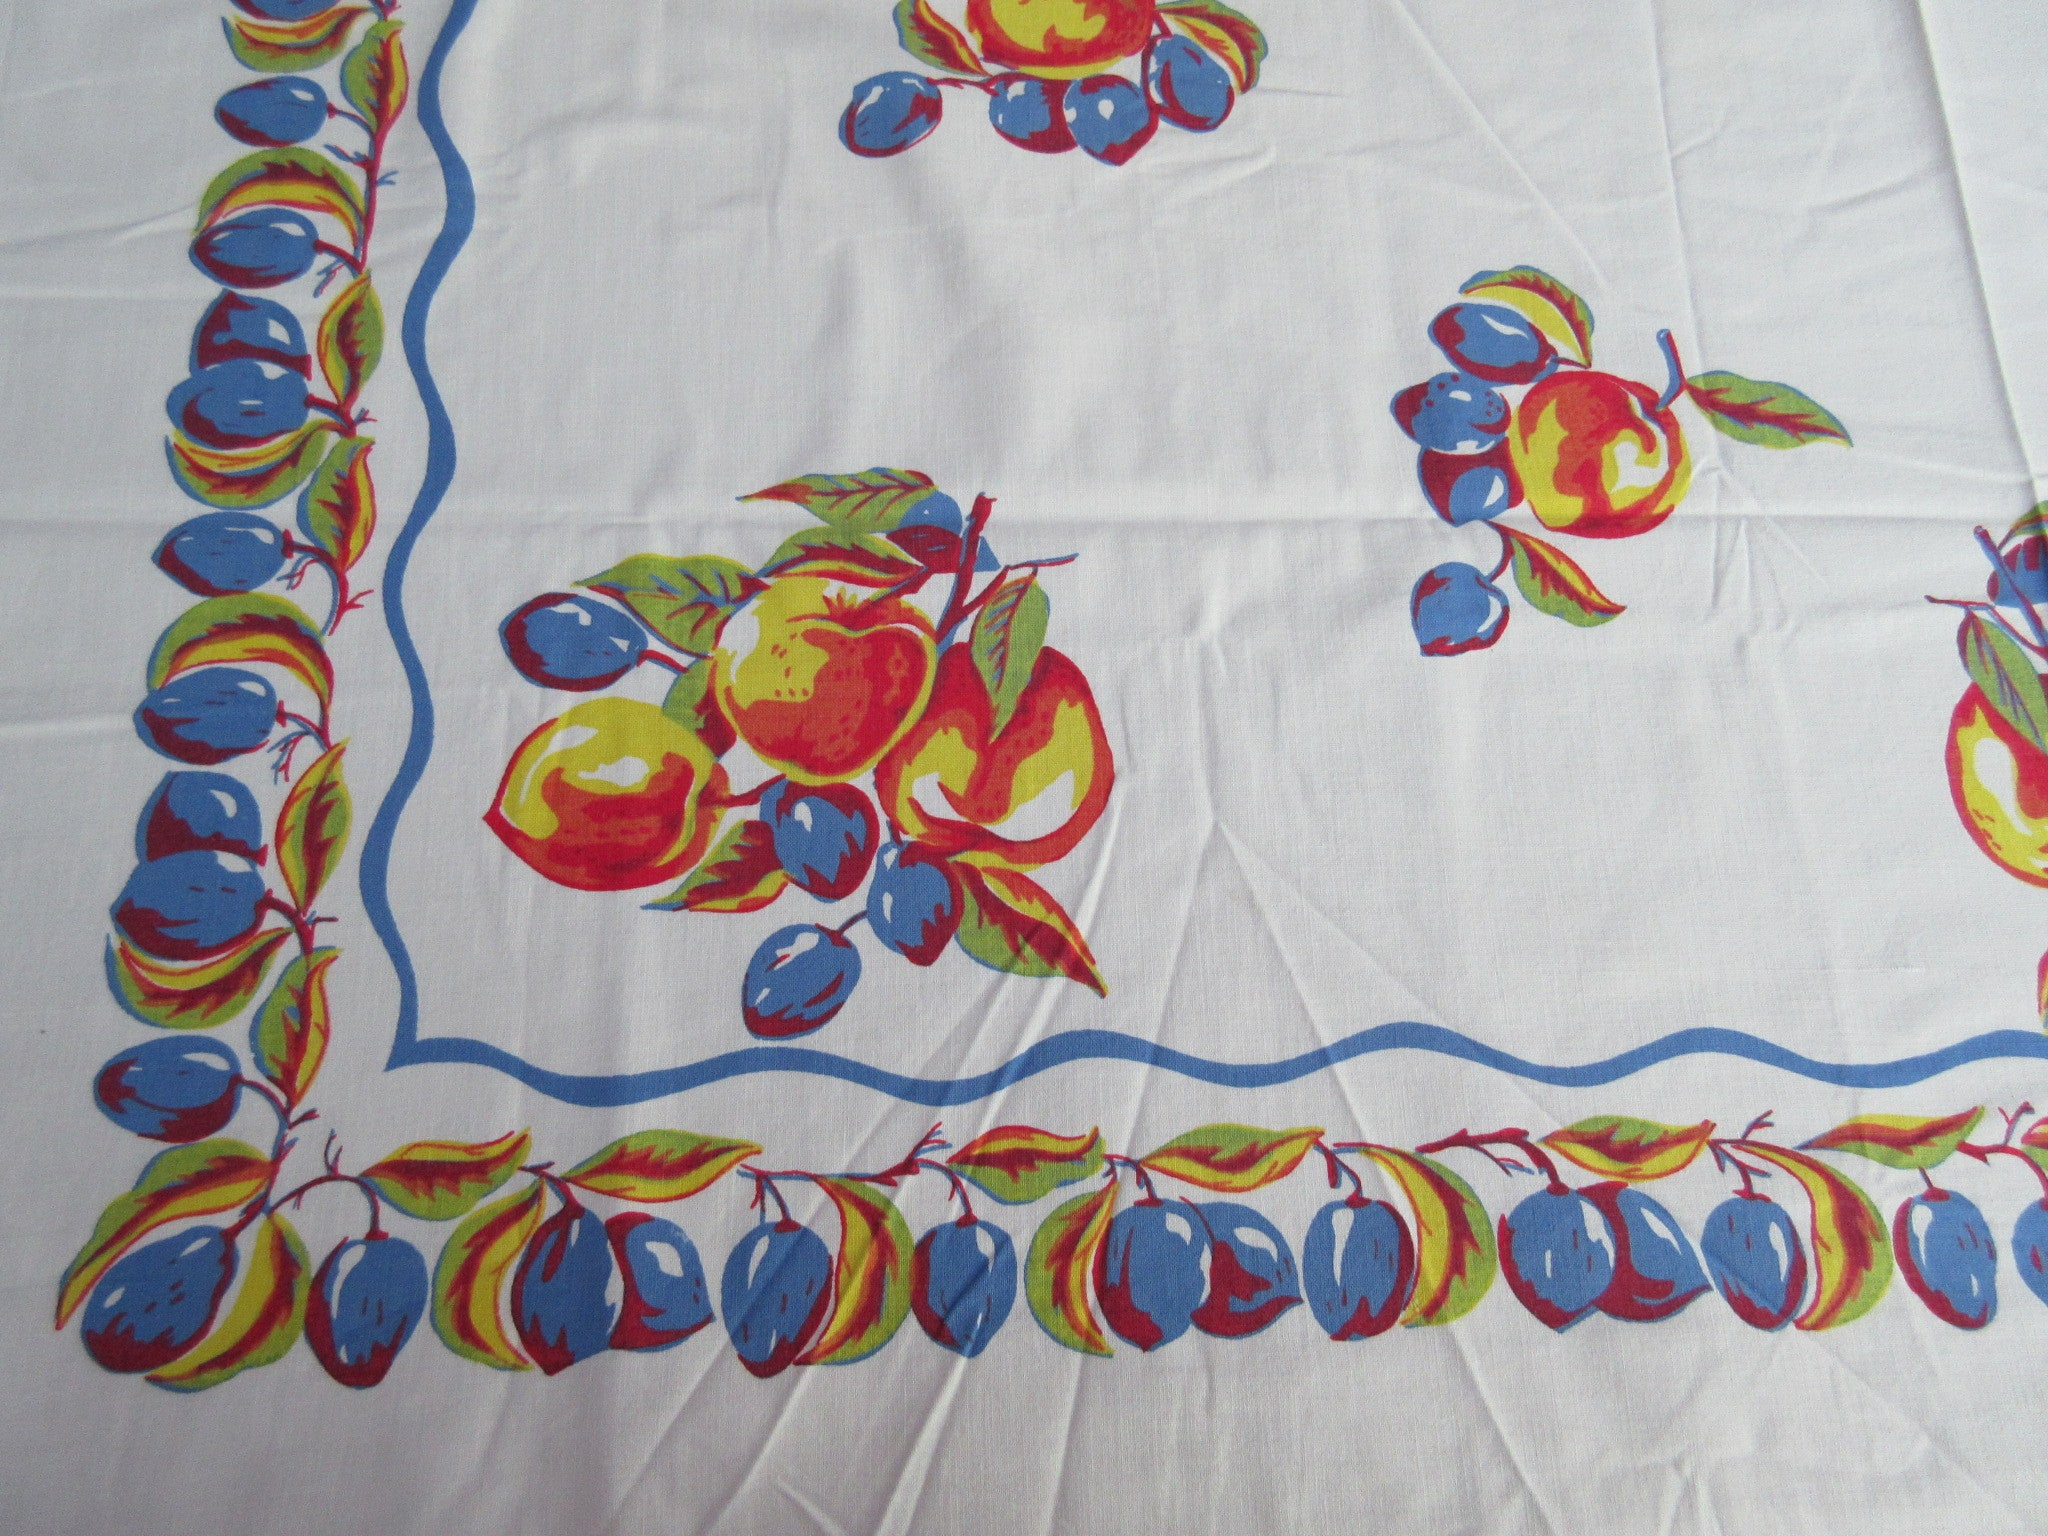 Primary Apples Plums Cutter? Fruit Vintage Printed Tablecloth (48 X 47)